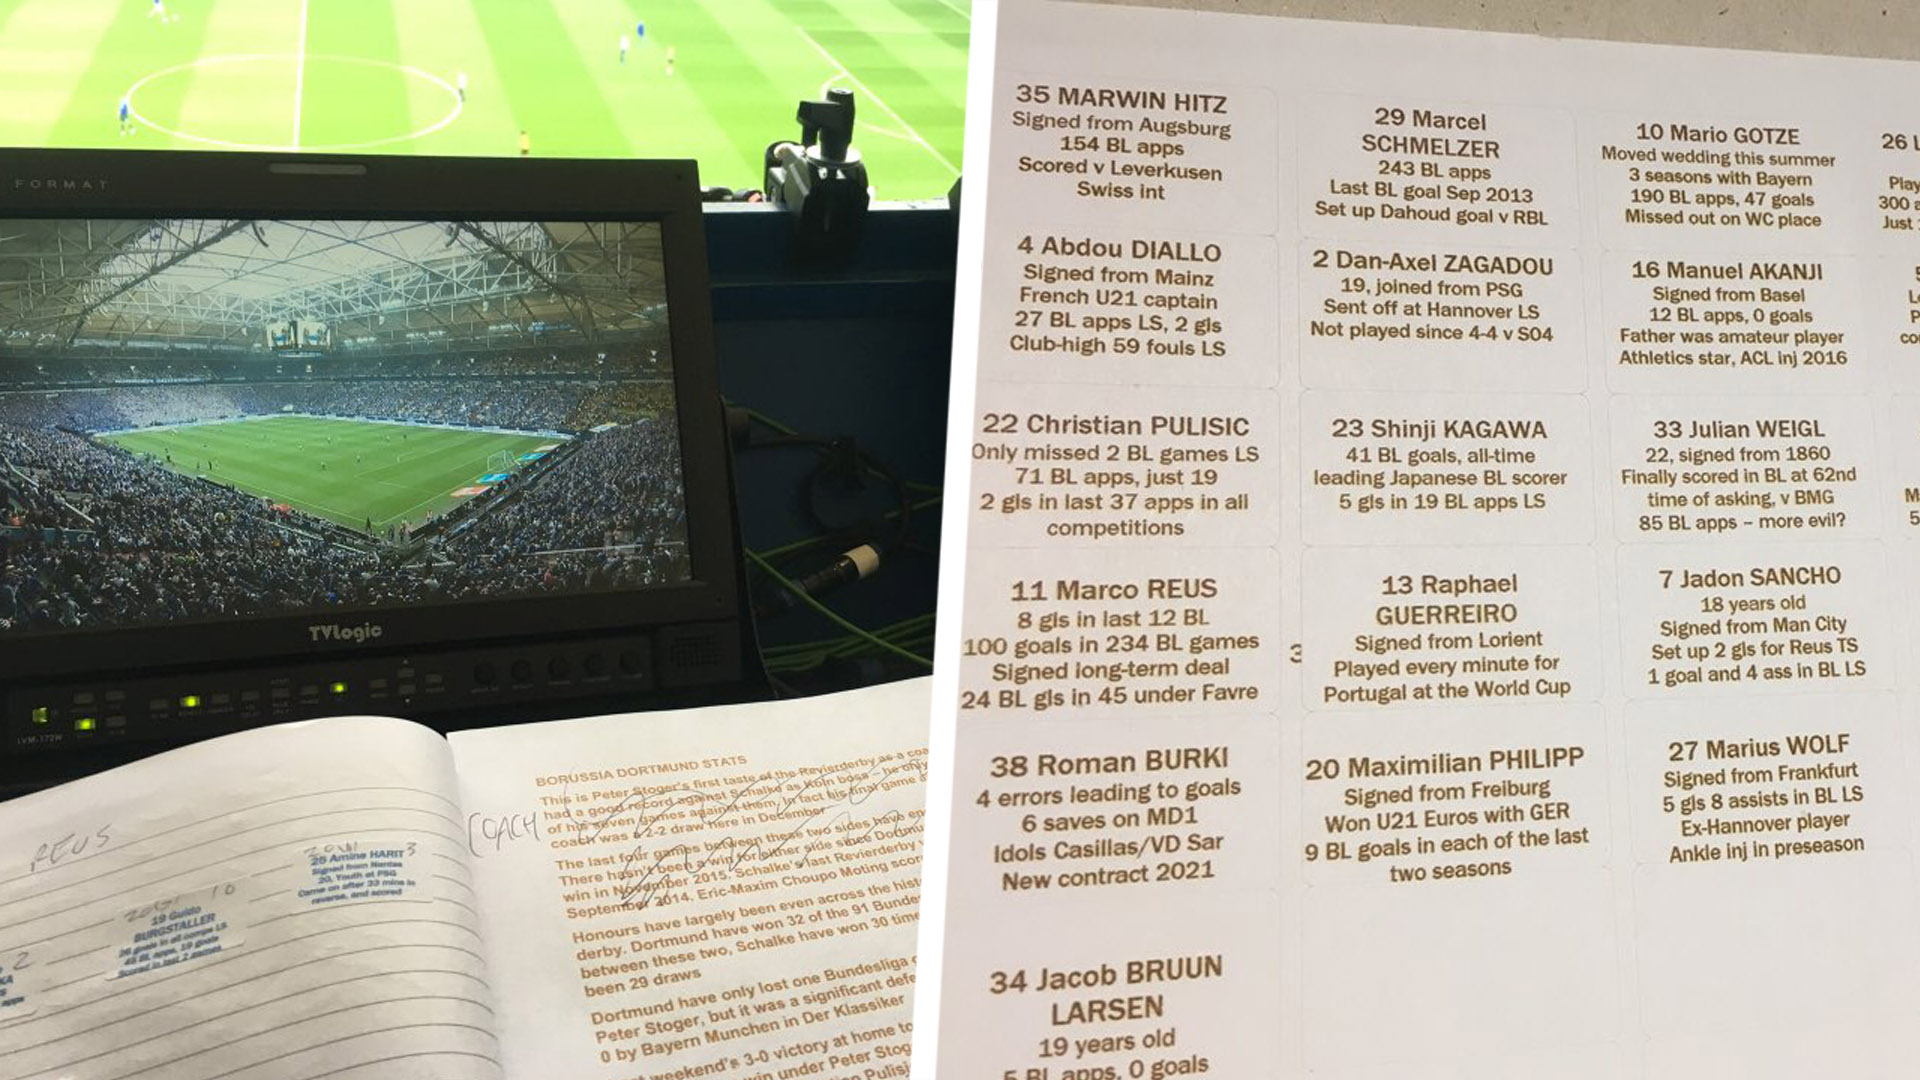 Commentator's notes